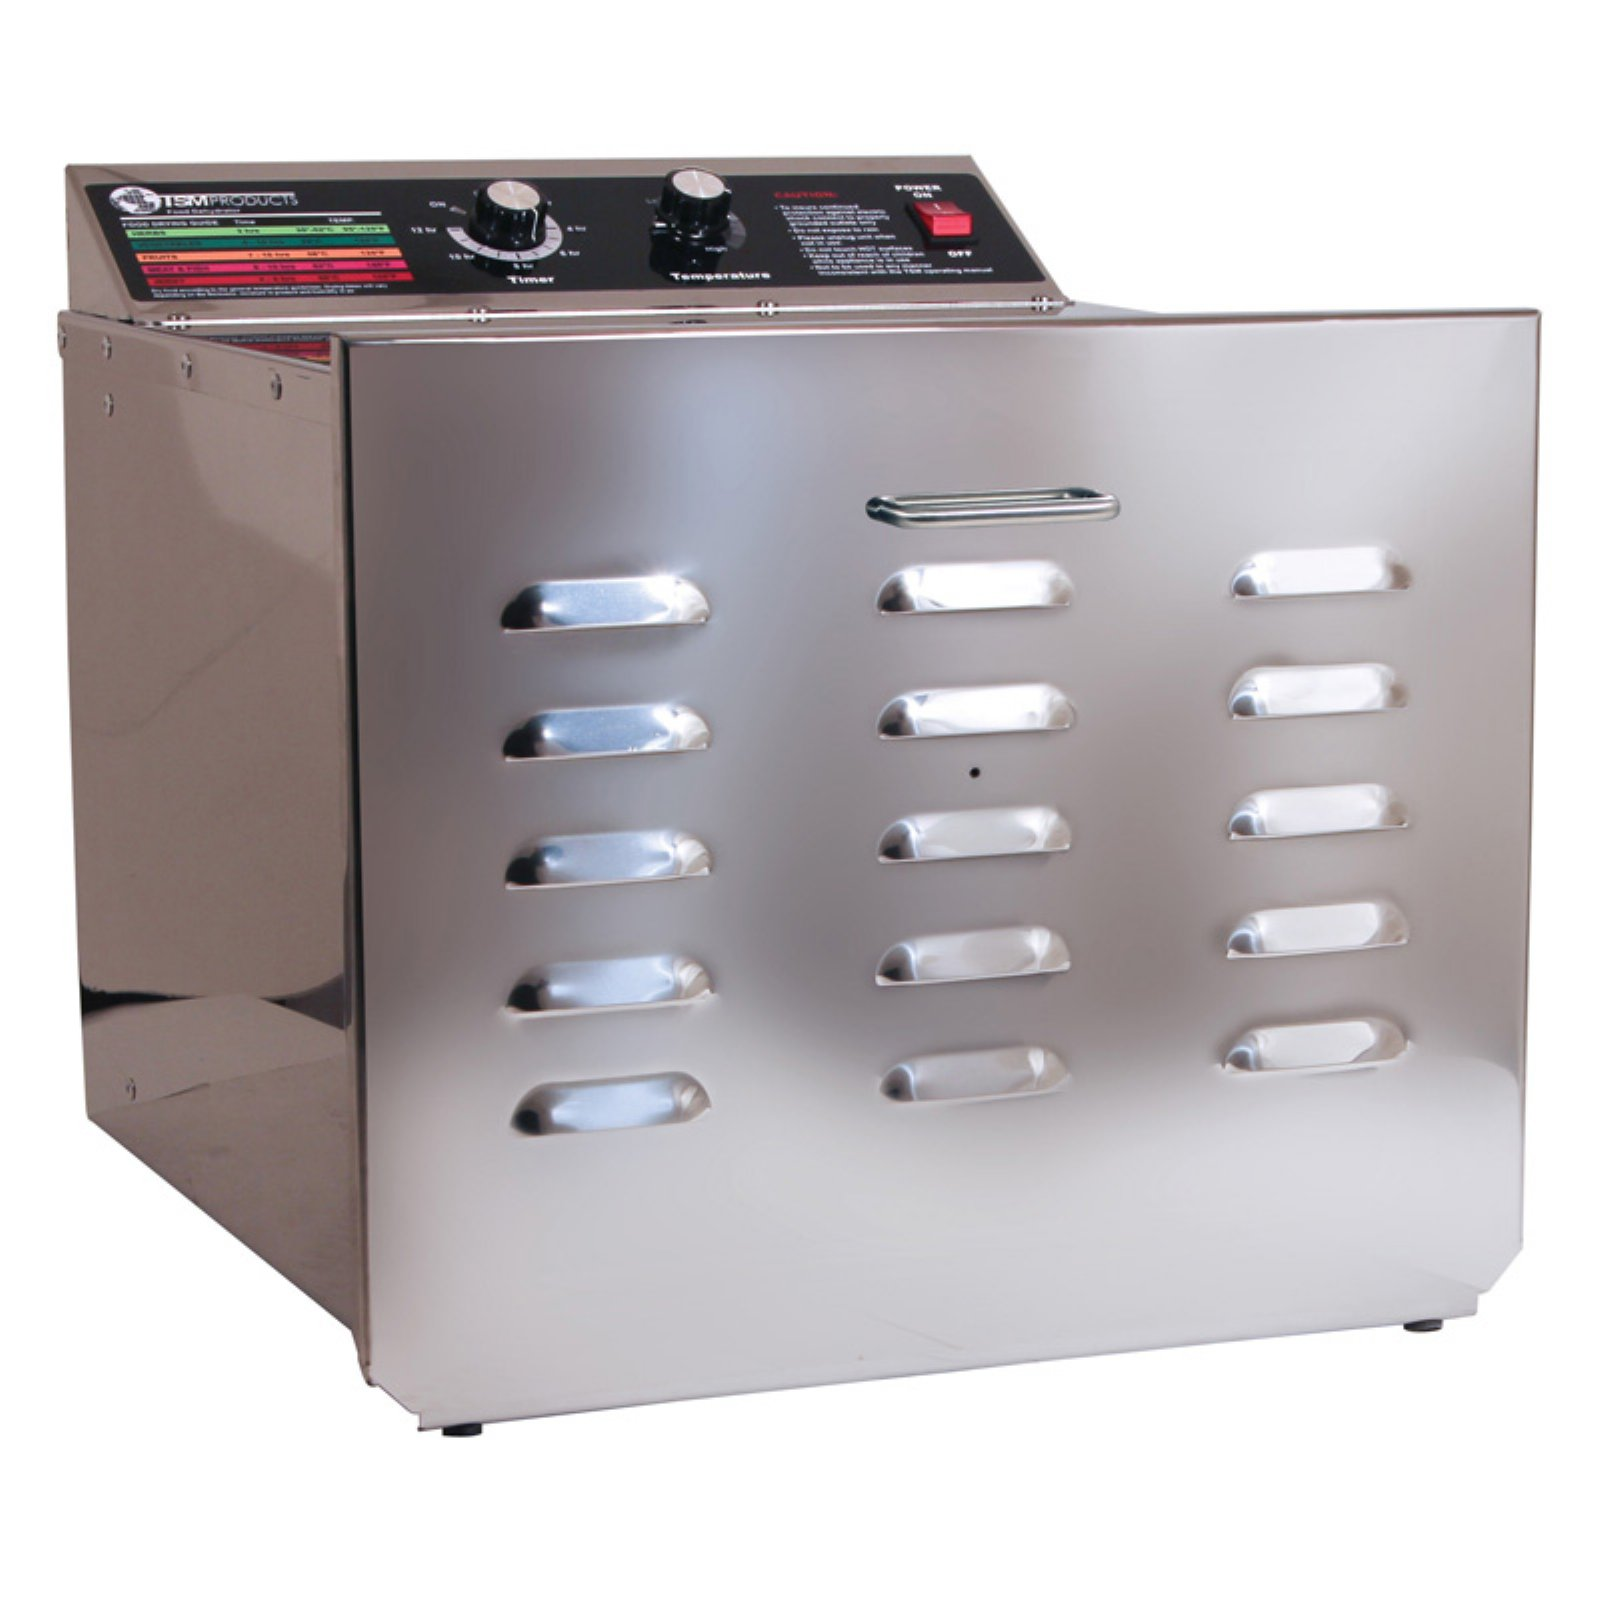 TSM 32609 10 Tray D10 Stainless Steel Dehydrator with Stainless Steel Shelves